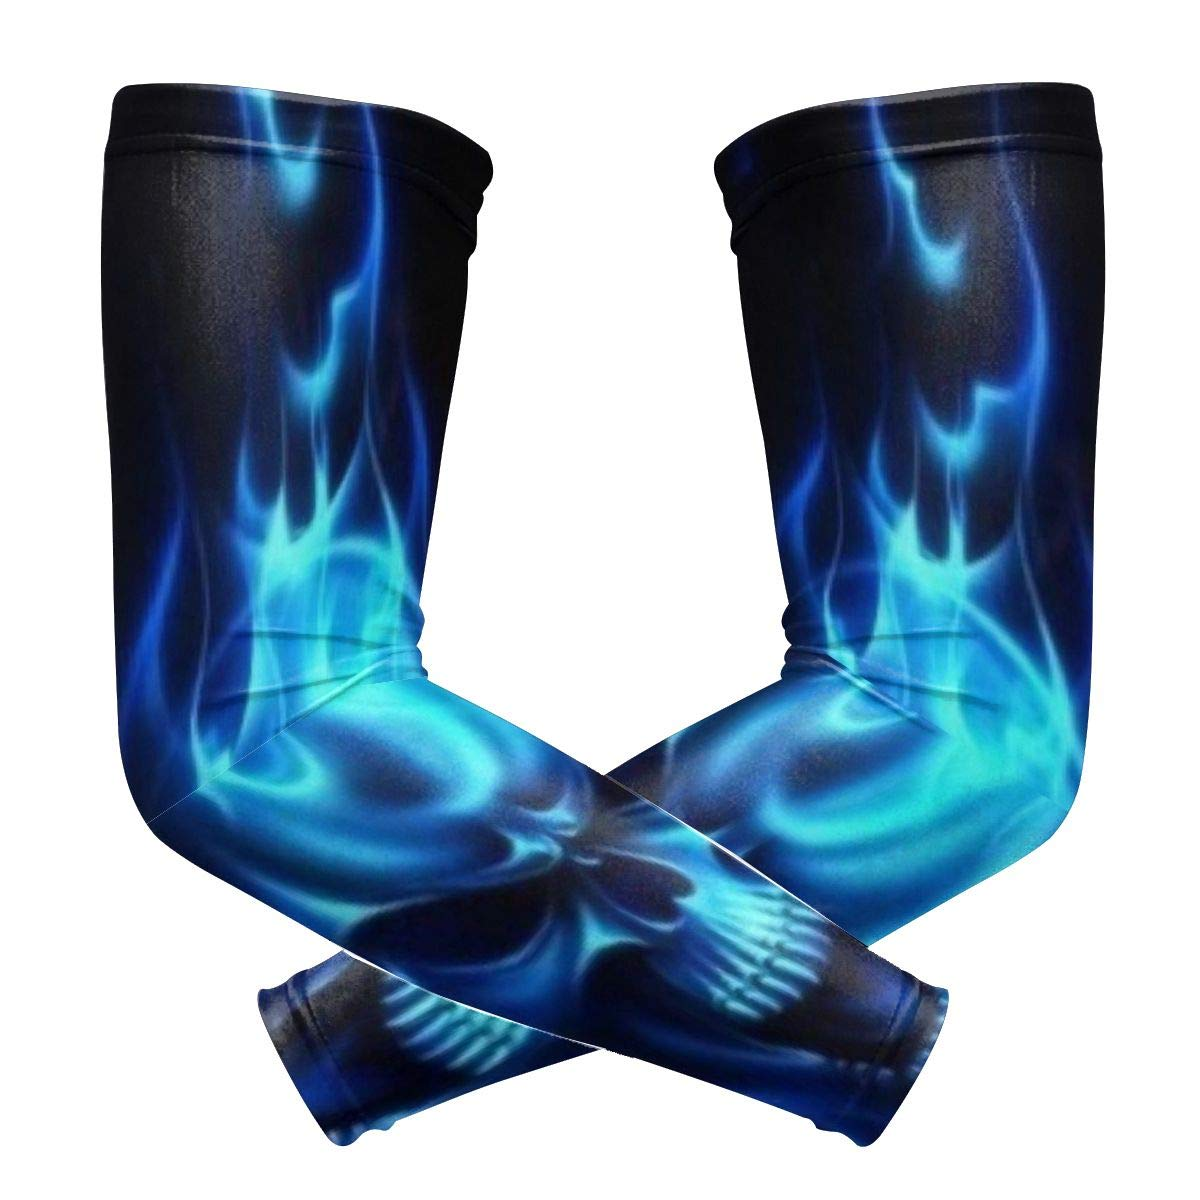 Flamin Blue Cool Skull Arm Sleeves Fake Temporary Tattoo Arm Sunscreen Sleeves High Elastic Compression Sleeves For Athletic Sports Men /& Women